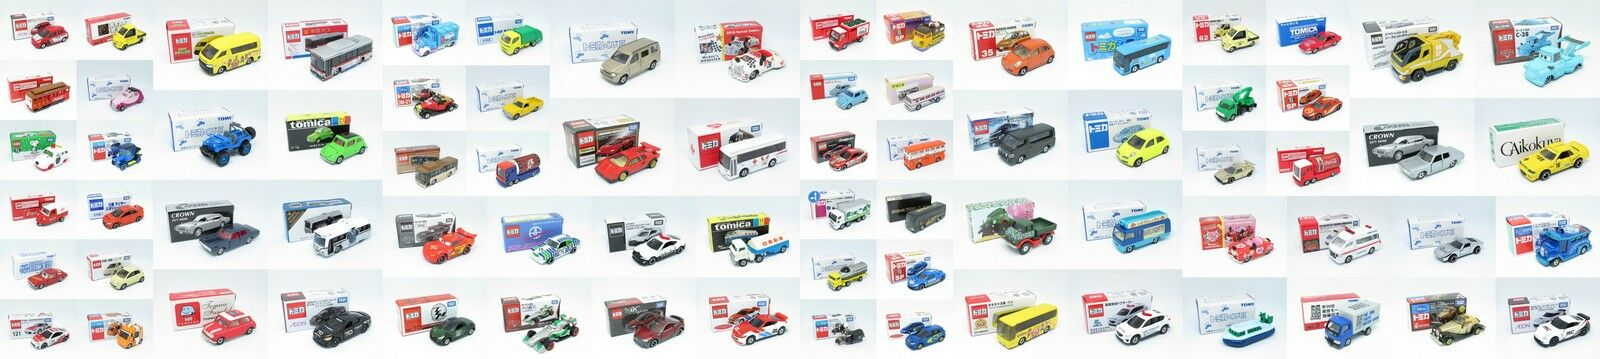 TOY CAR STORE